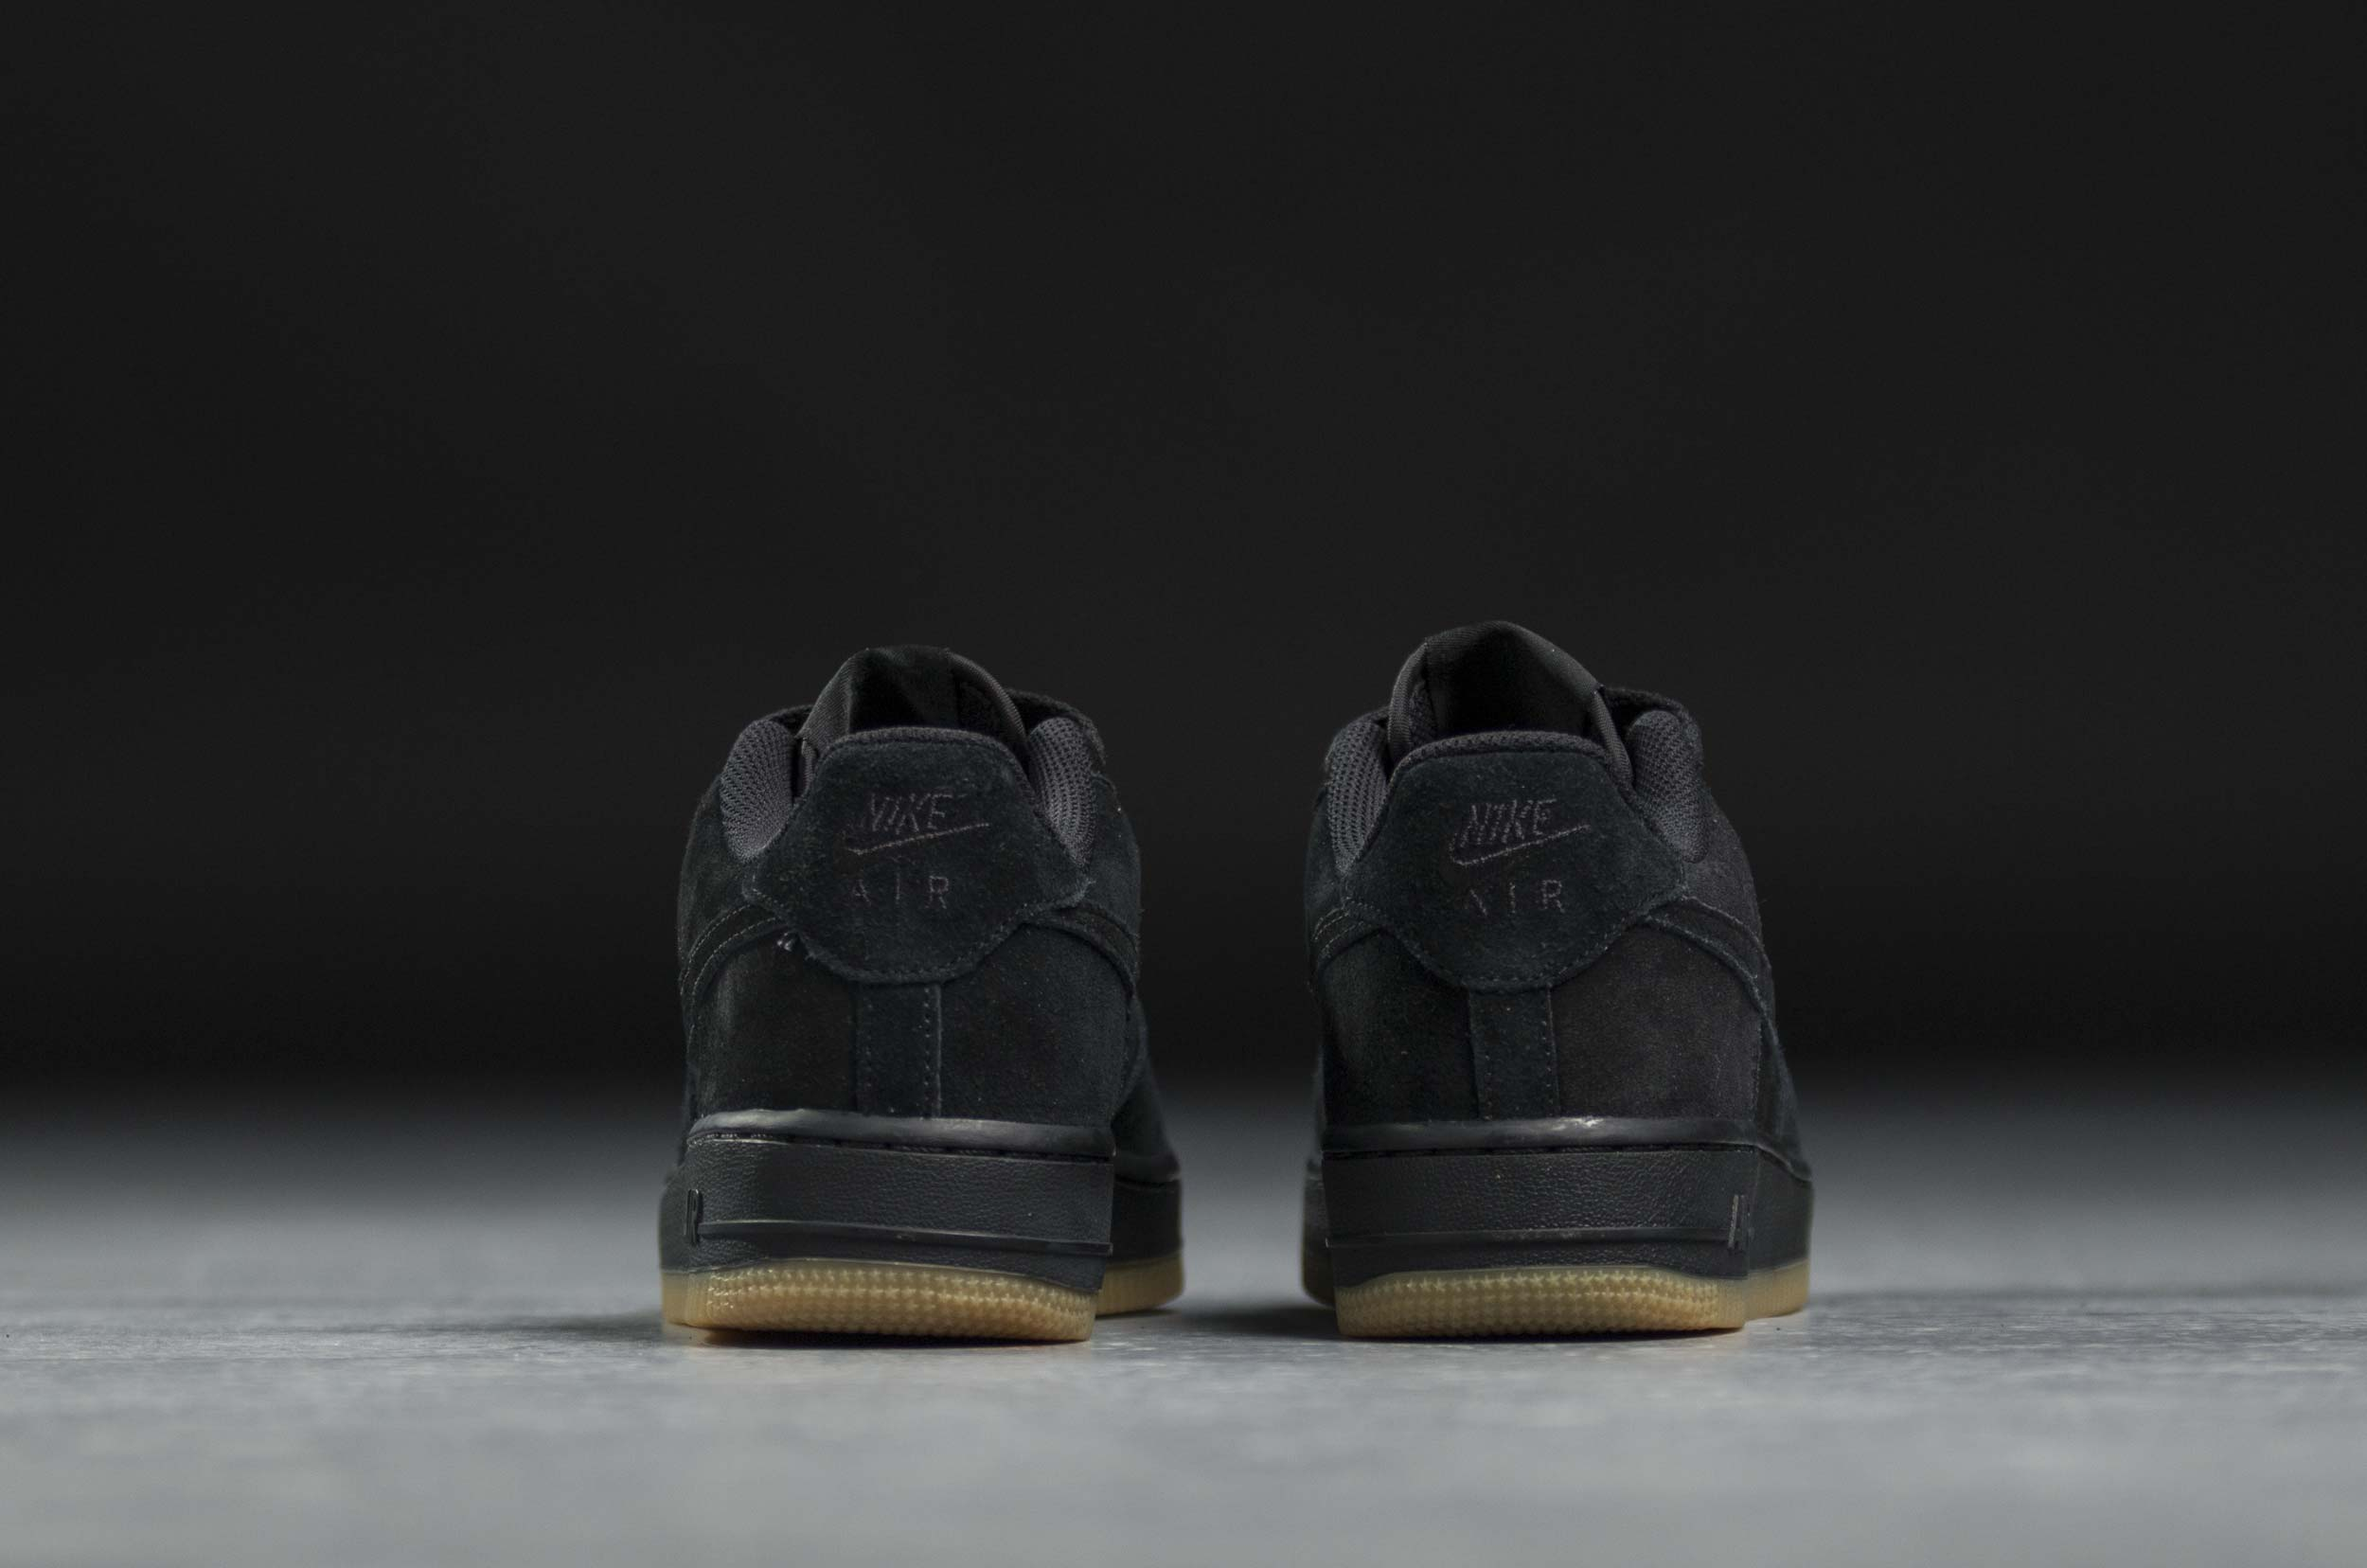 NIKE AIR FORCE 1 PREMIUM AR0042-001 Μαύρο